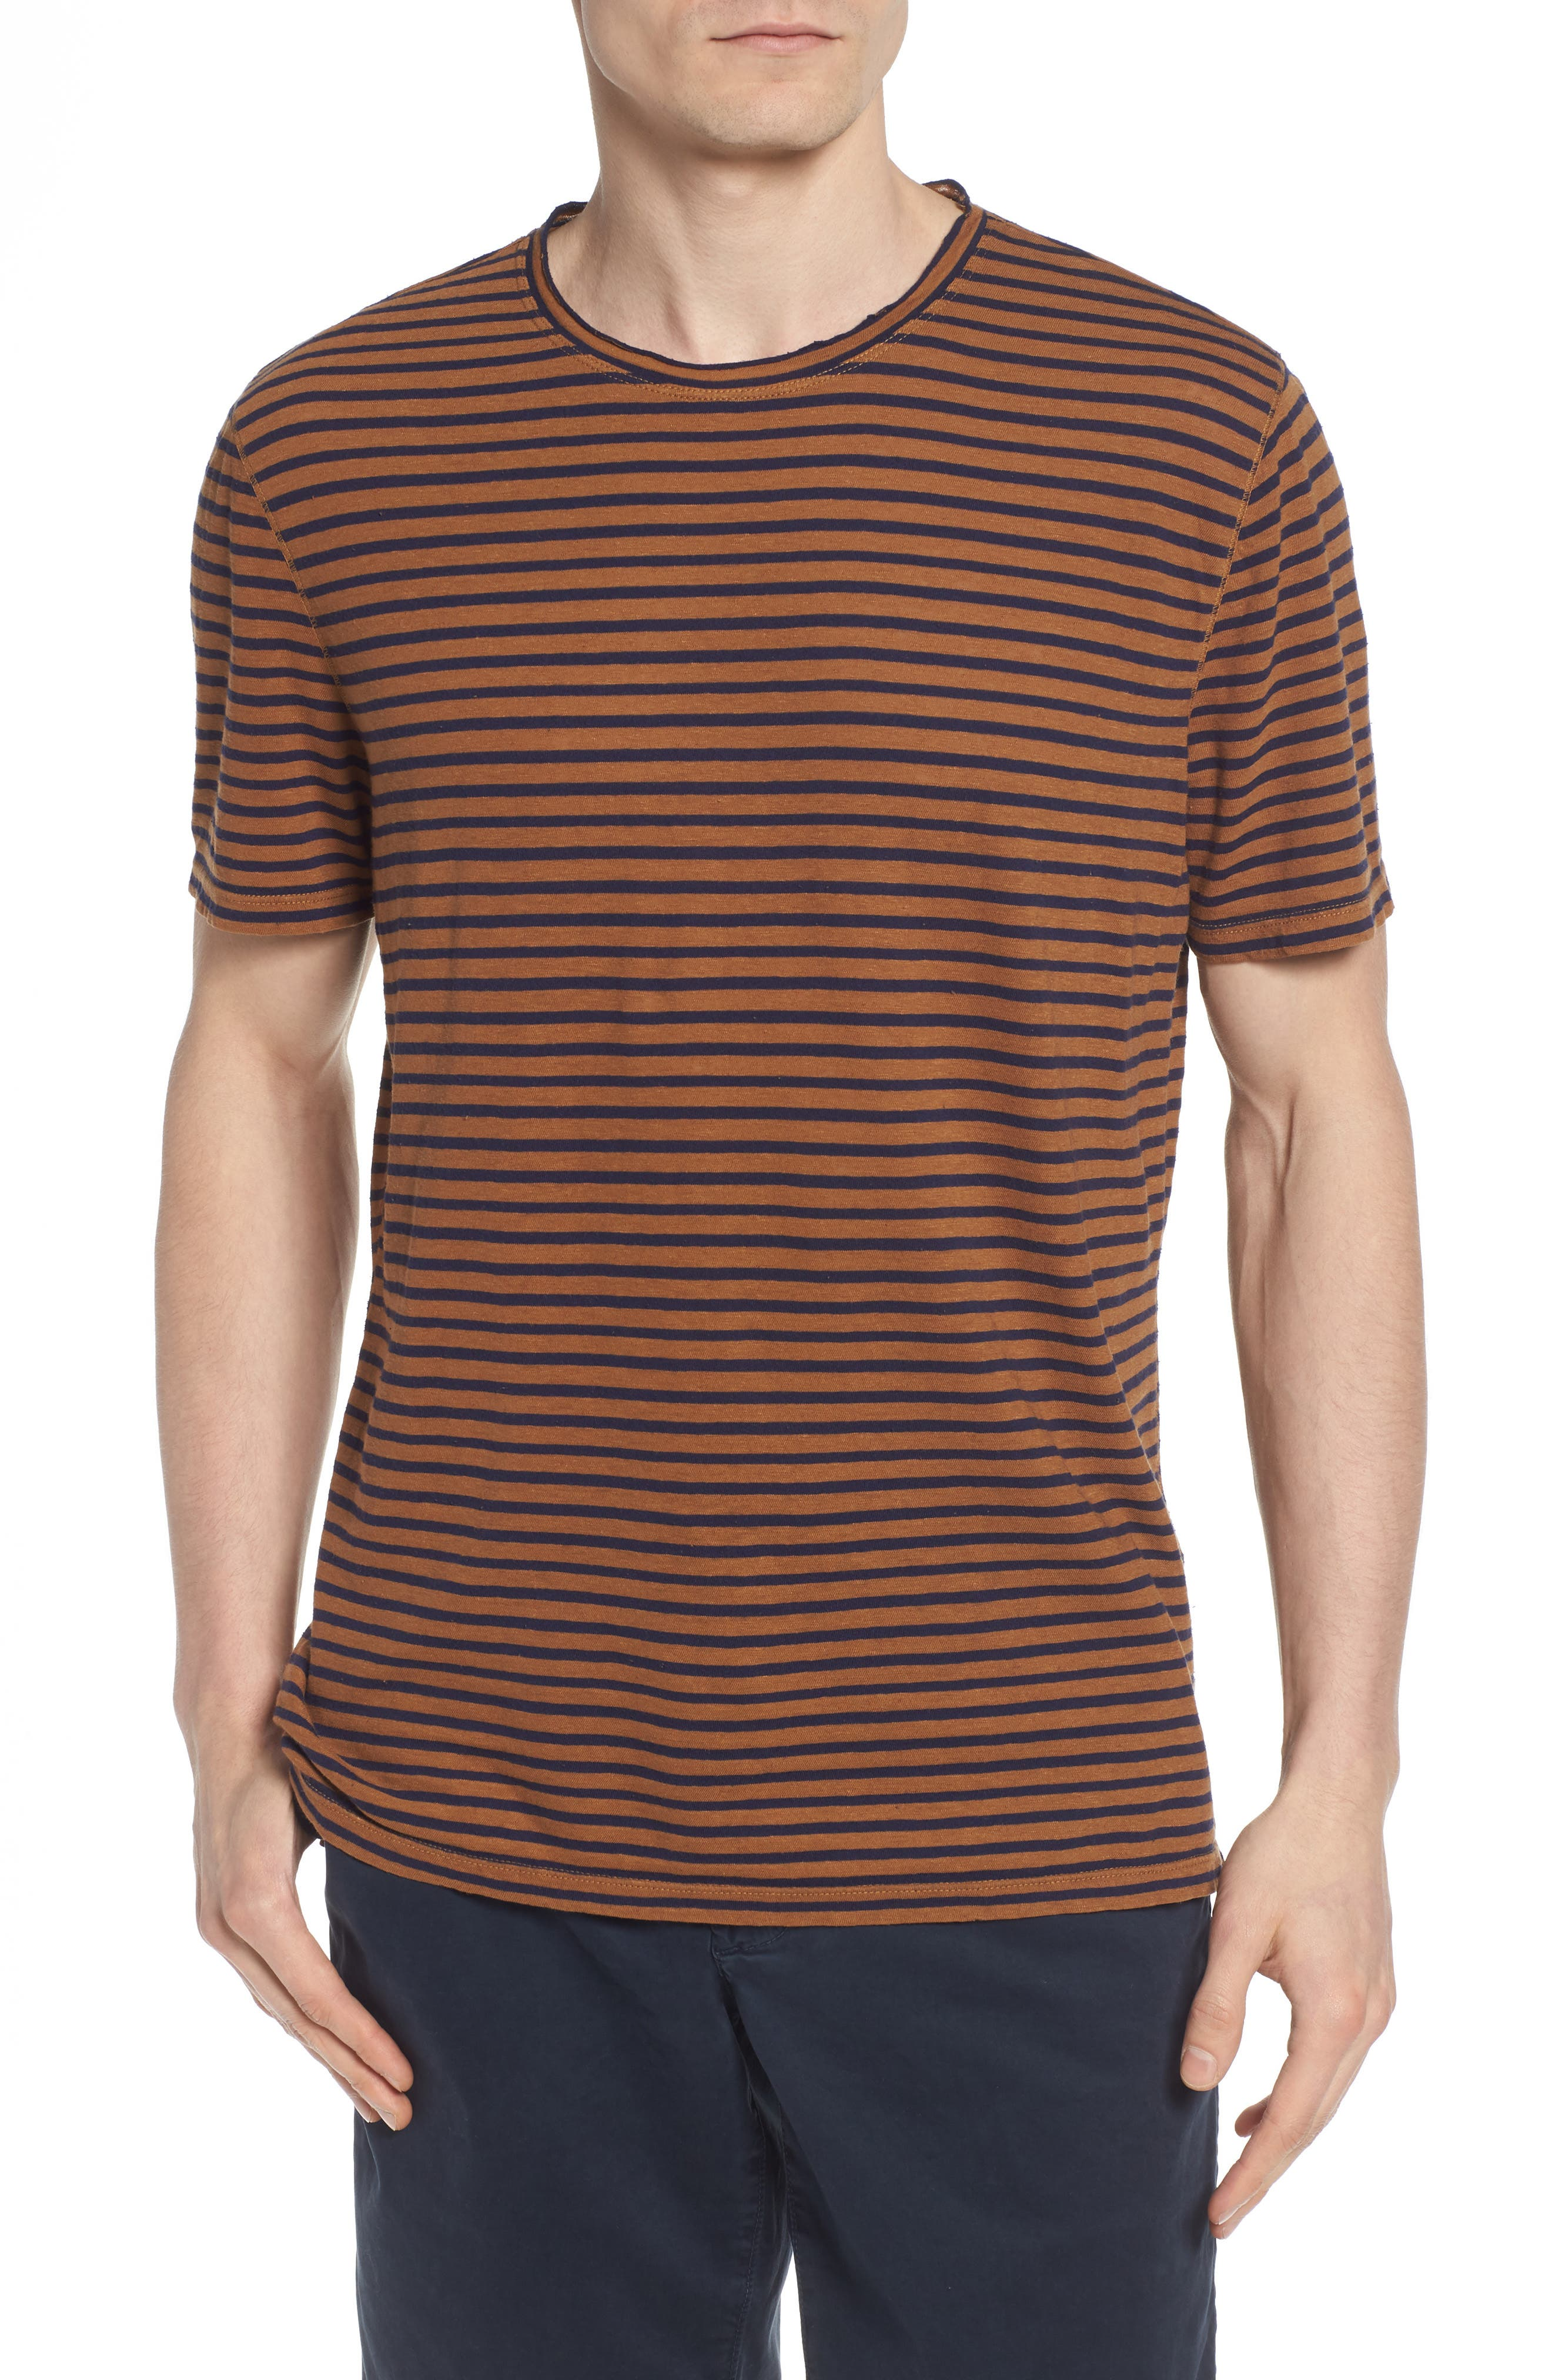 Theo Striped Cotton & Linen T-Shirt,                             Main thumbnail 1, color,                             BRONZE CLAY/ NAVY